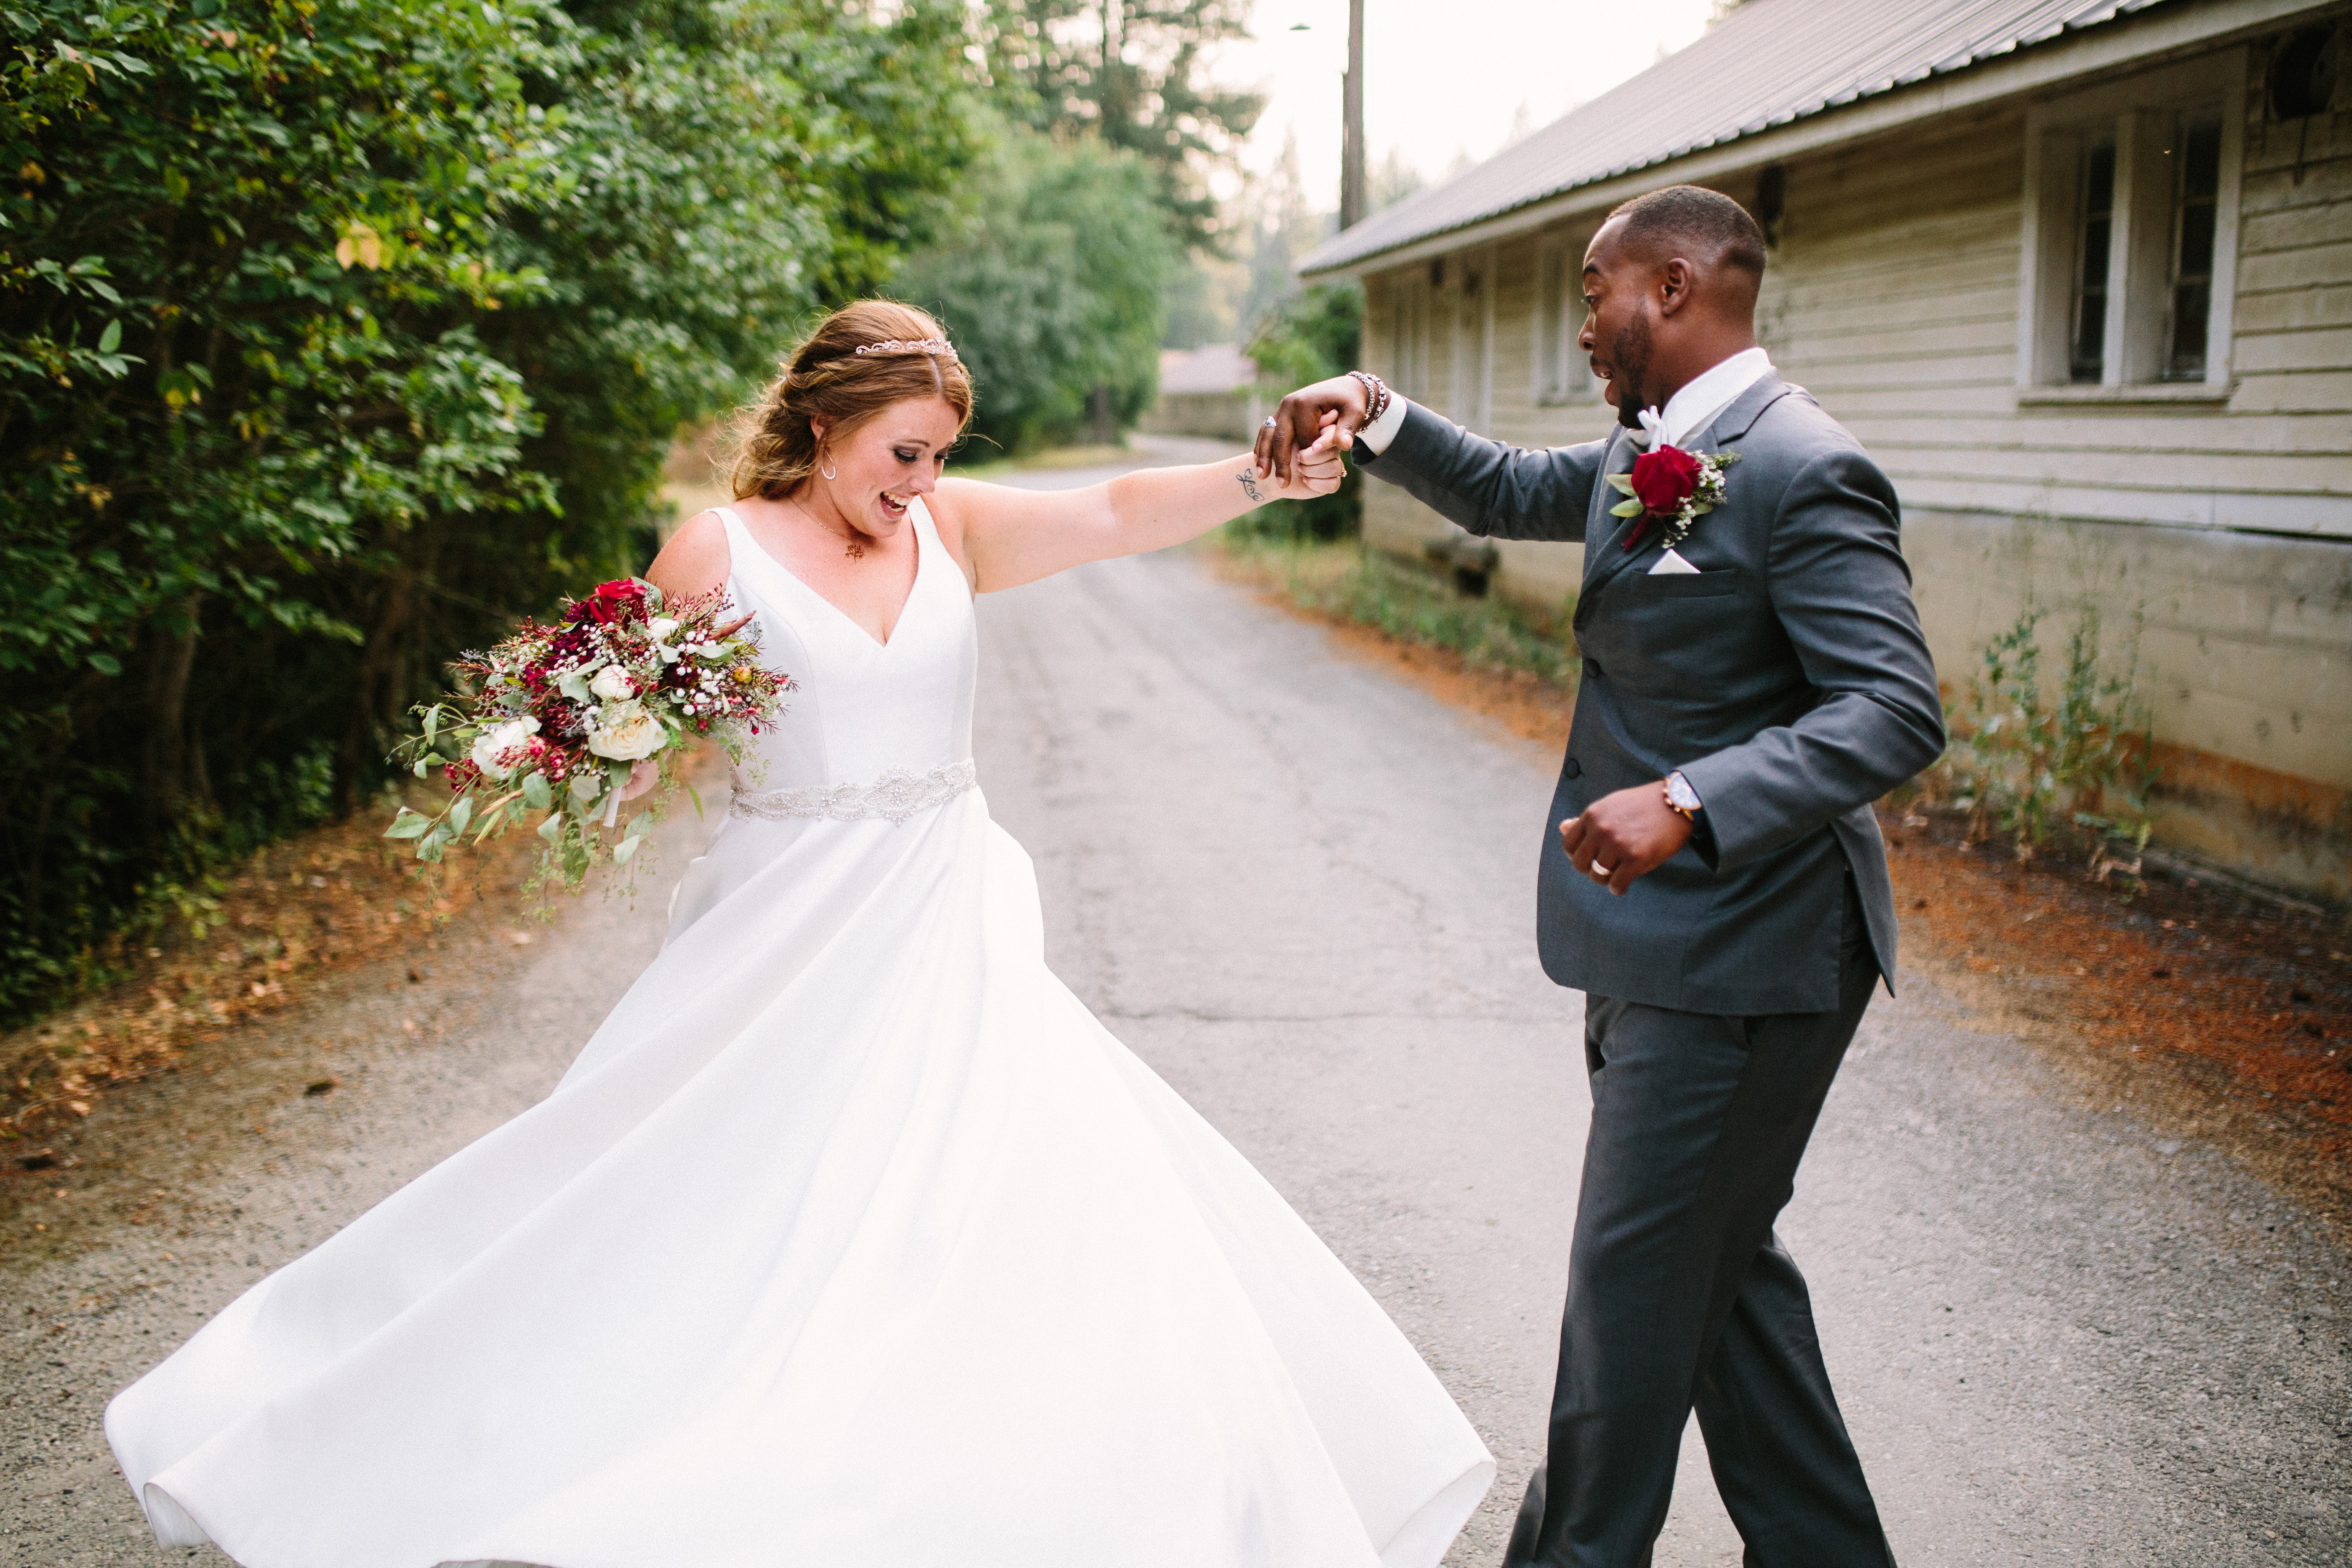 JJ & Hilary's PNW Whimsical Summer Wedding